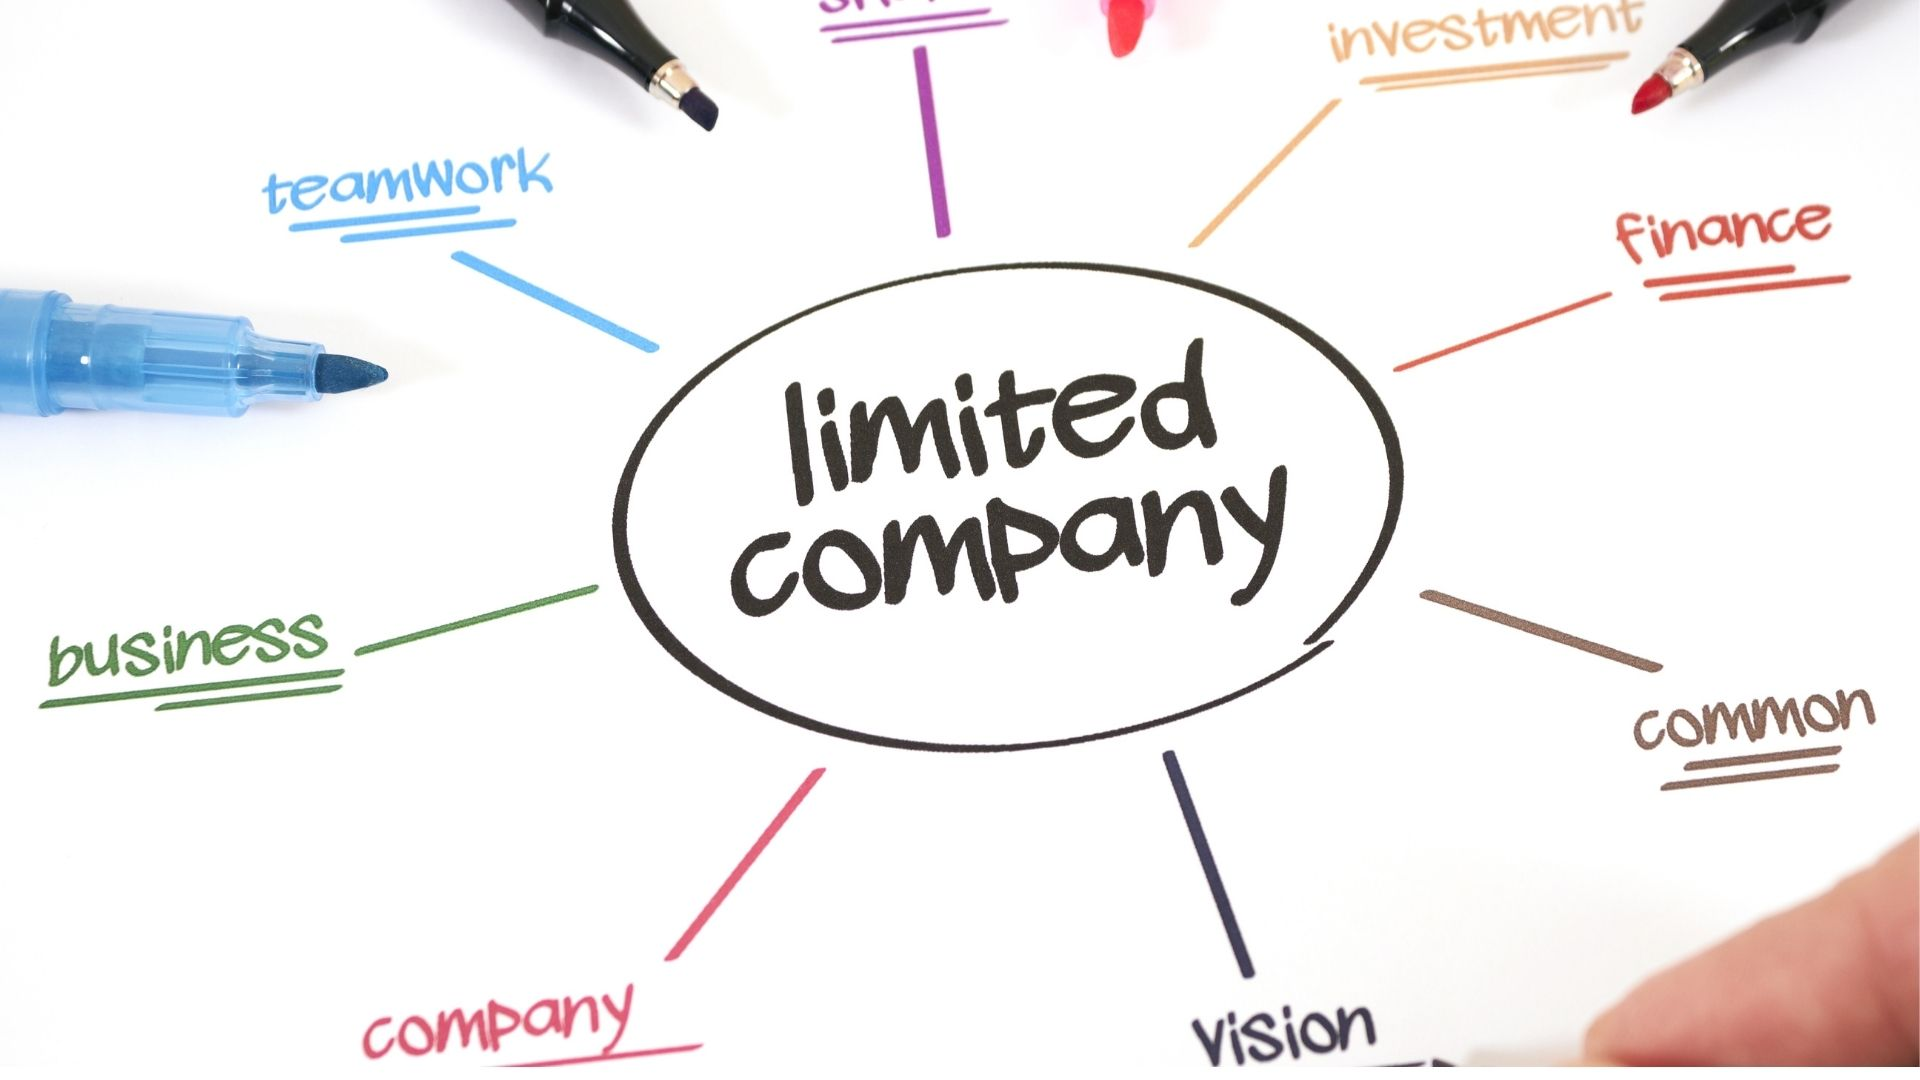 Sole trade or limited company?